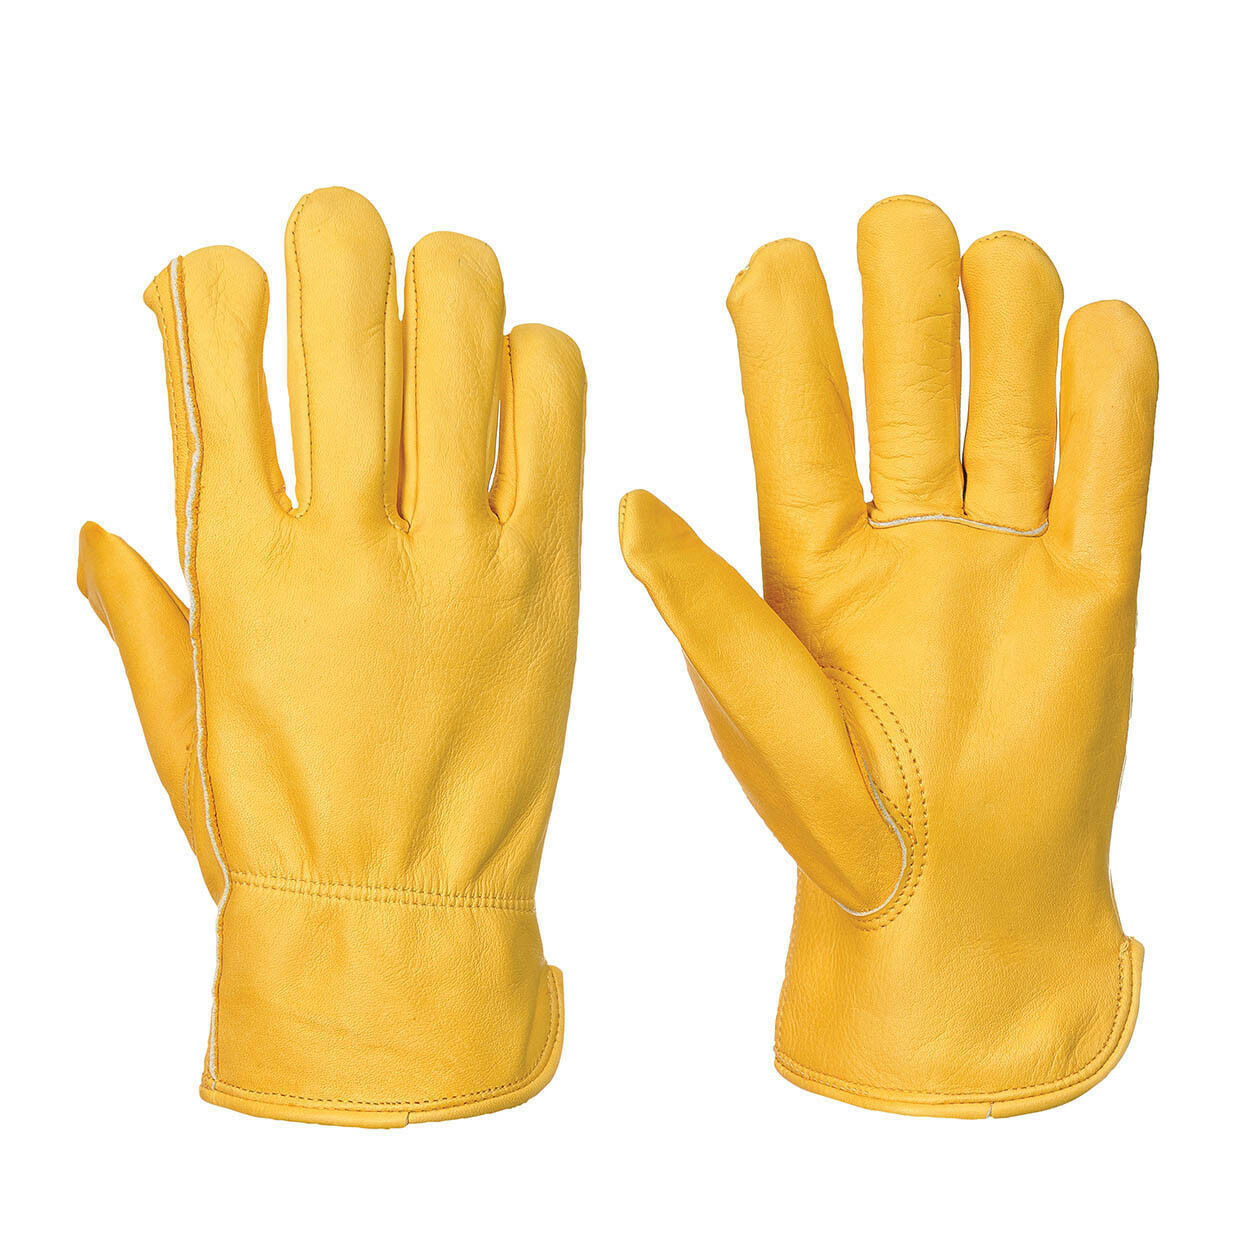 Leather work gloves with thinsulate lining - Lined Leather Work Gloves Uk